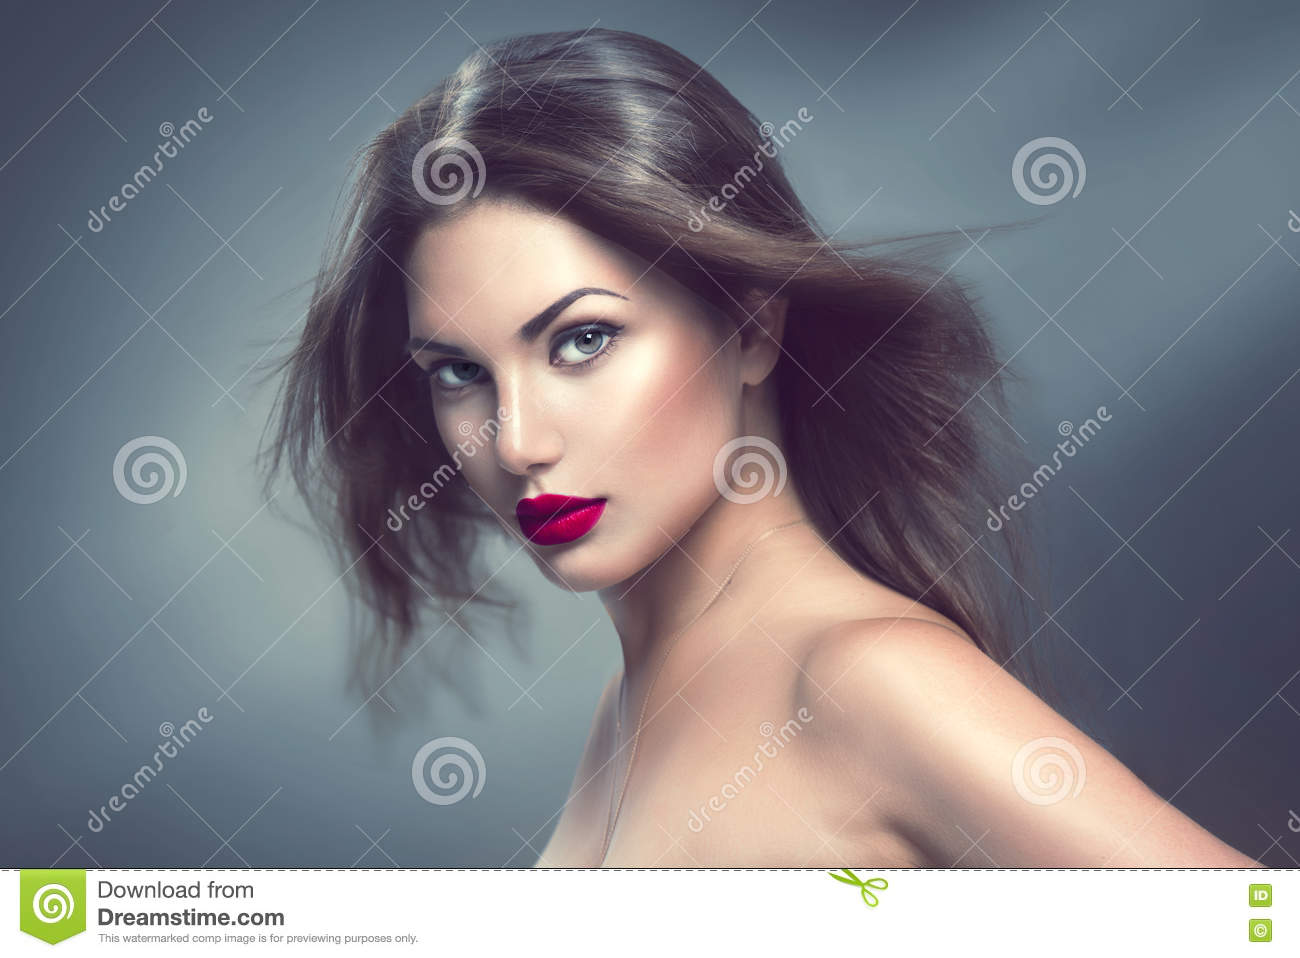 Fashion model girl portrait with long hair